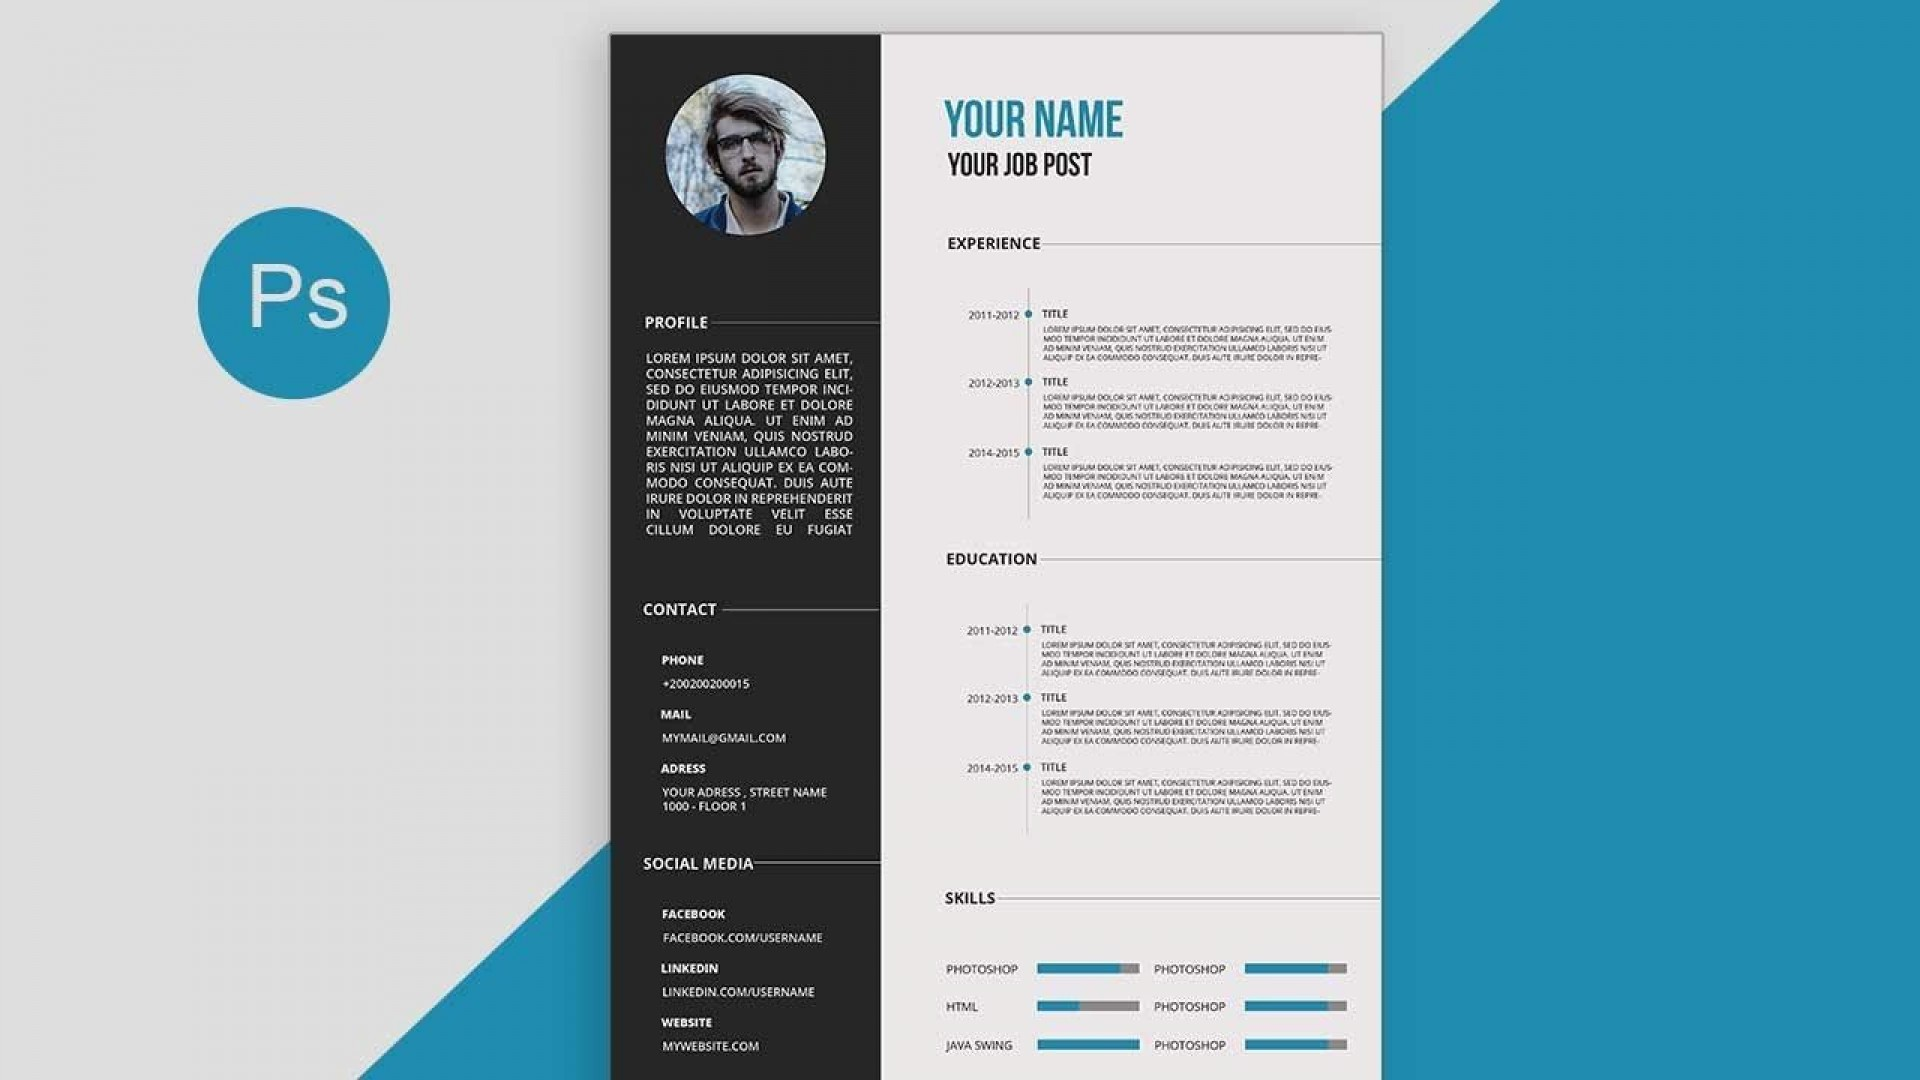 002 Top How To Create A Resume Template In Photoshop High Resolution 1920